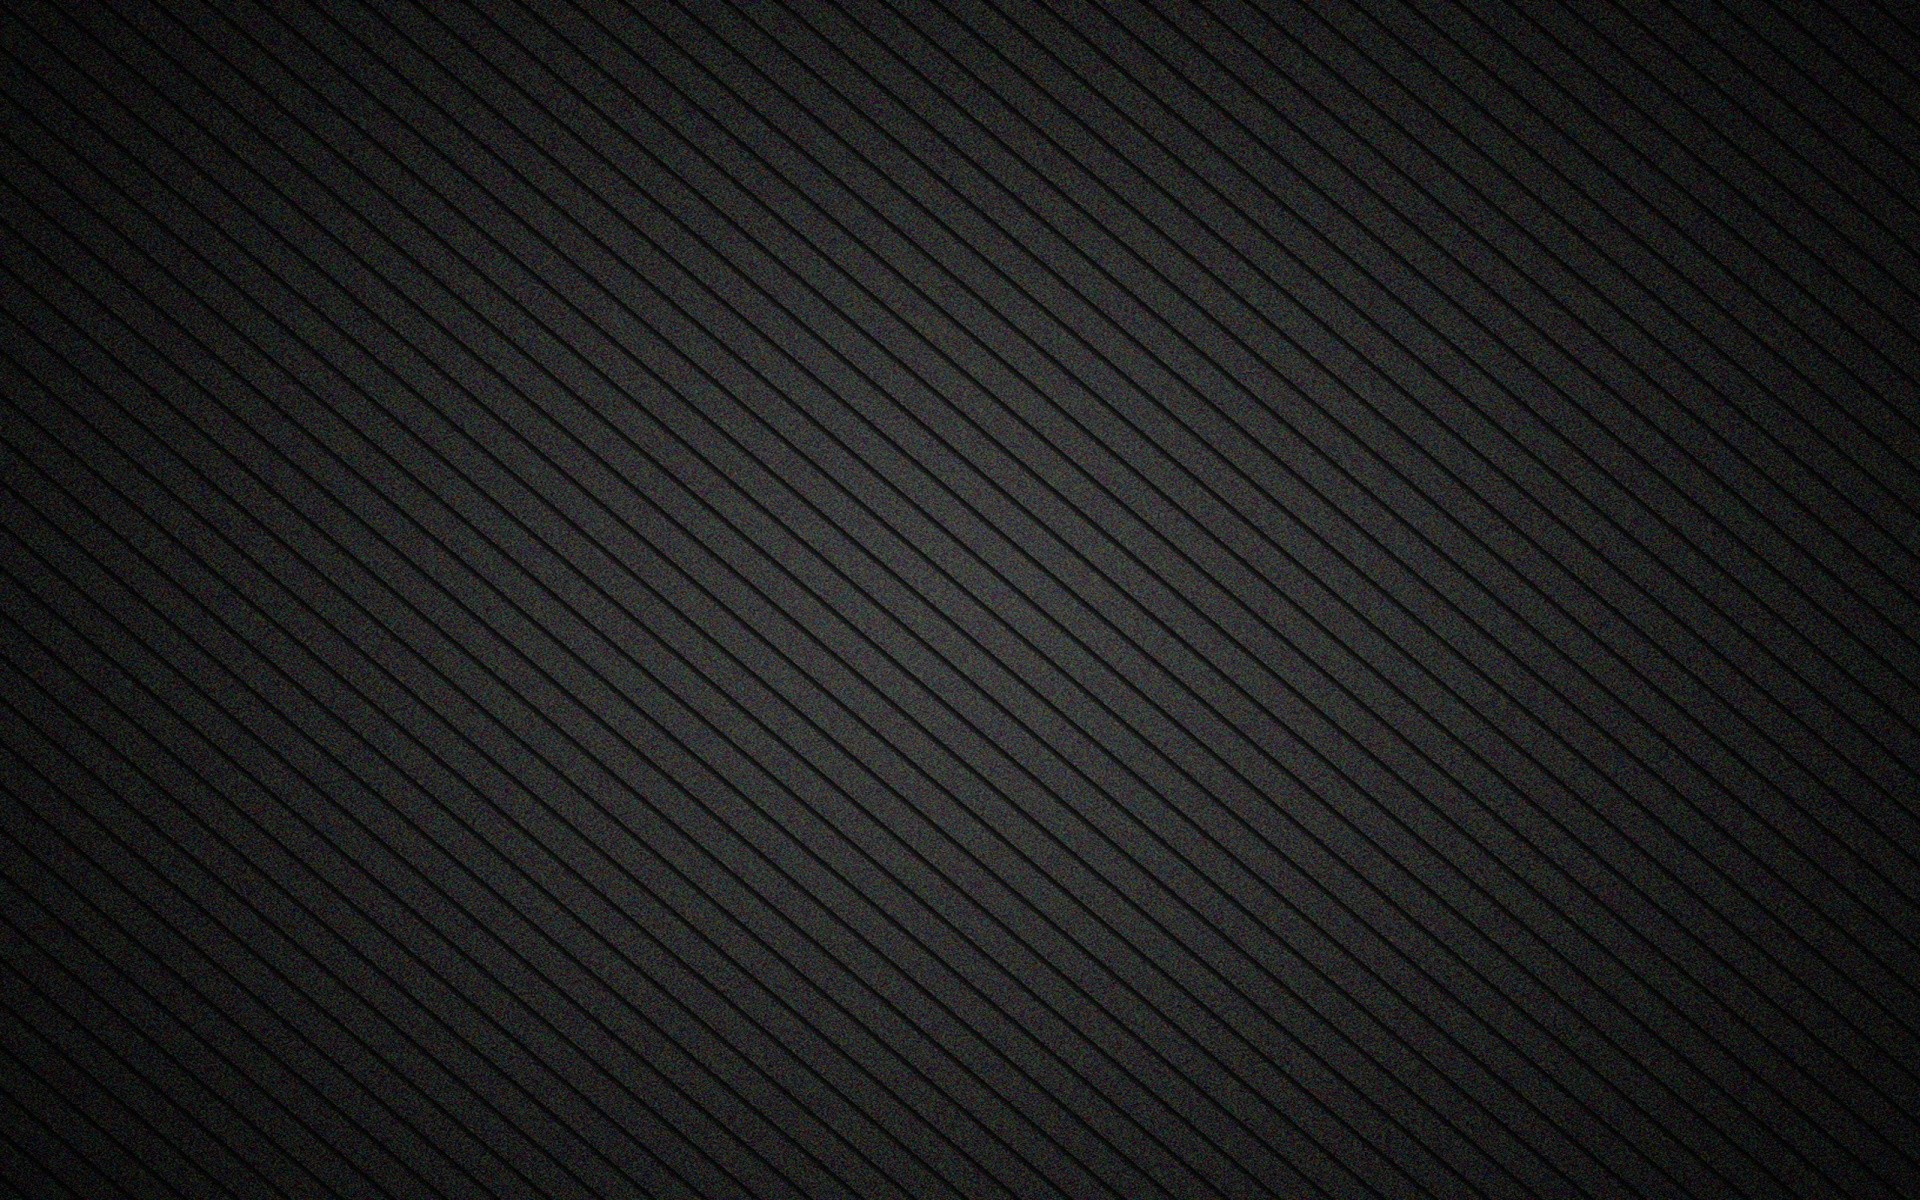 1920x1200 Black Wallpaper 30.